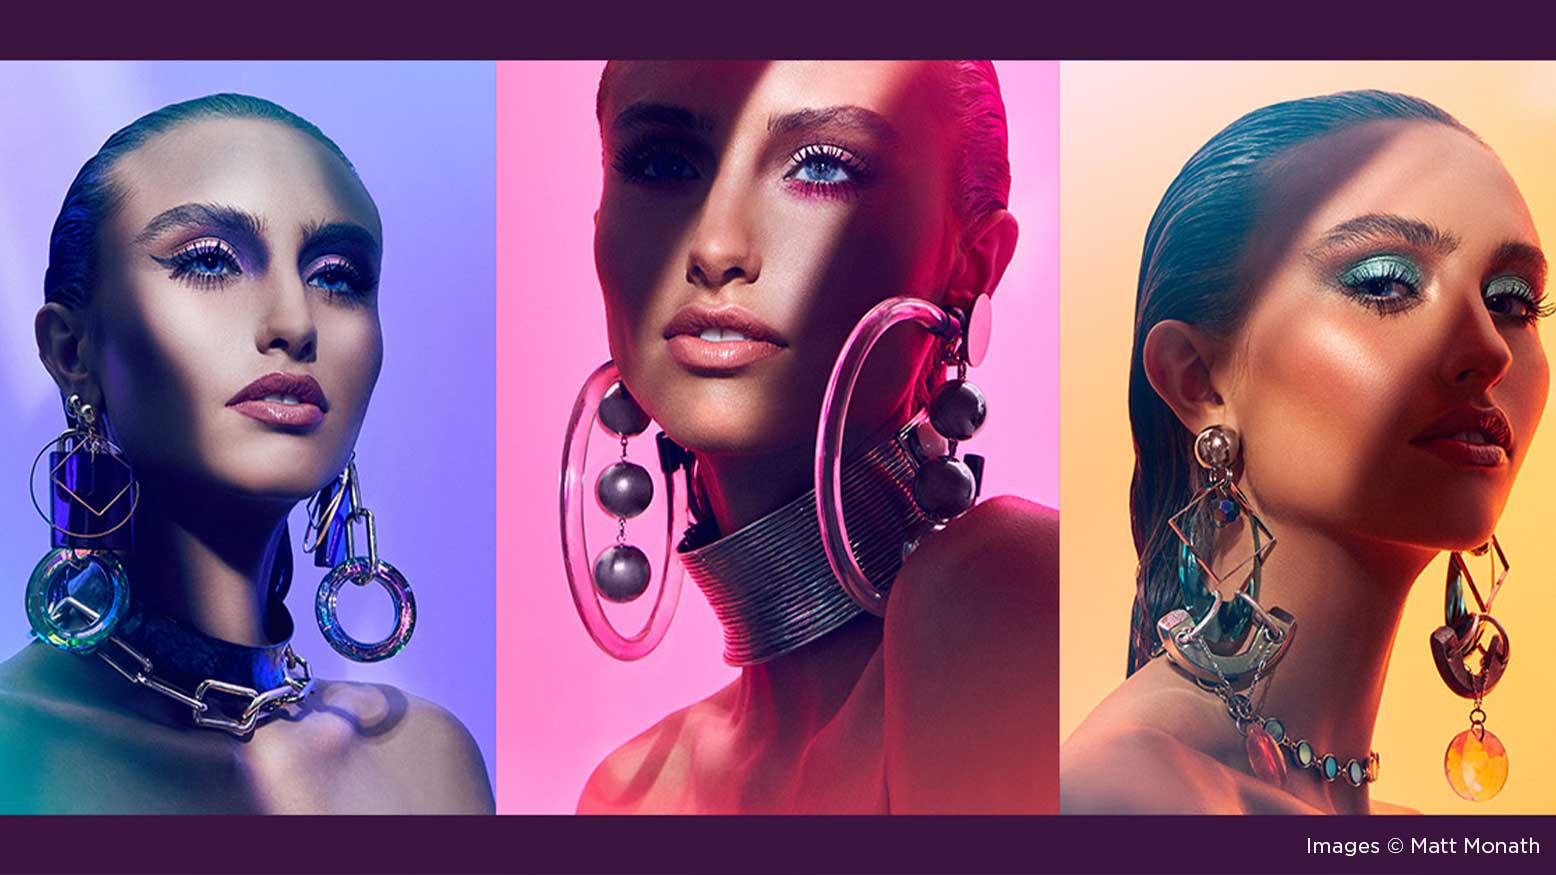 Colorful Lighting with Gels